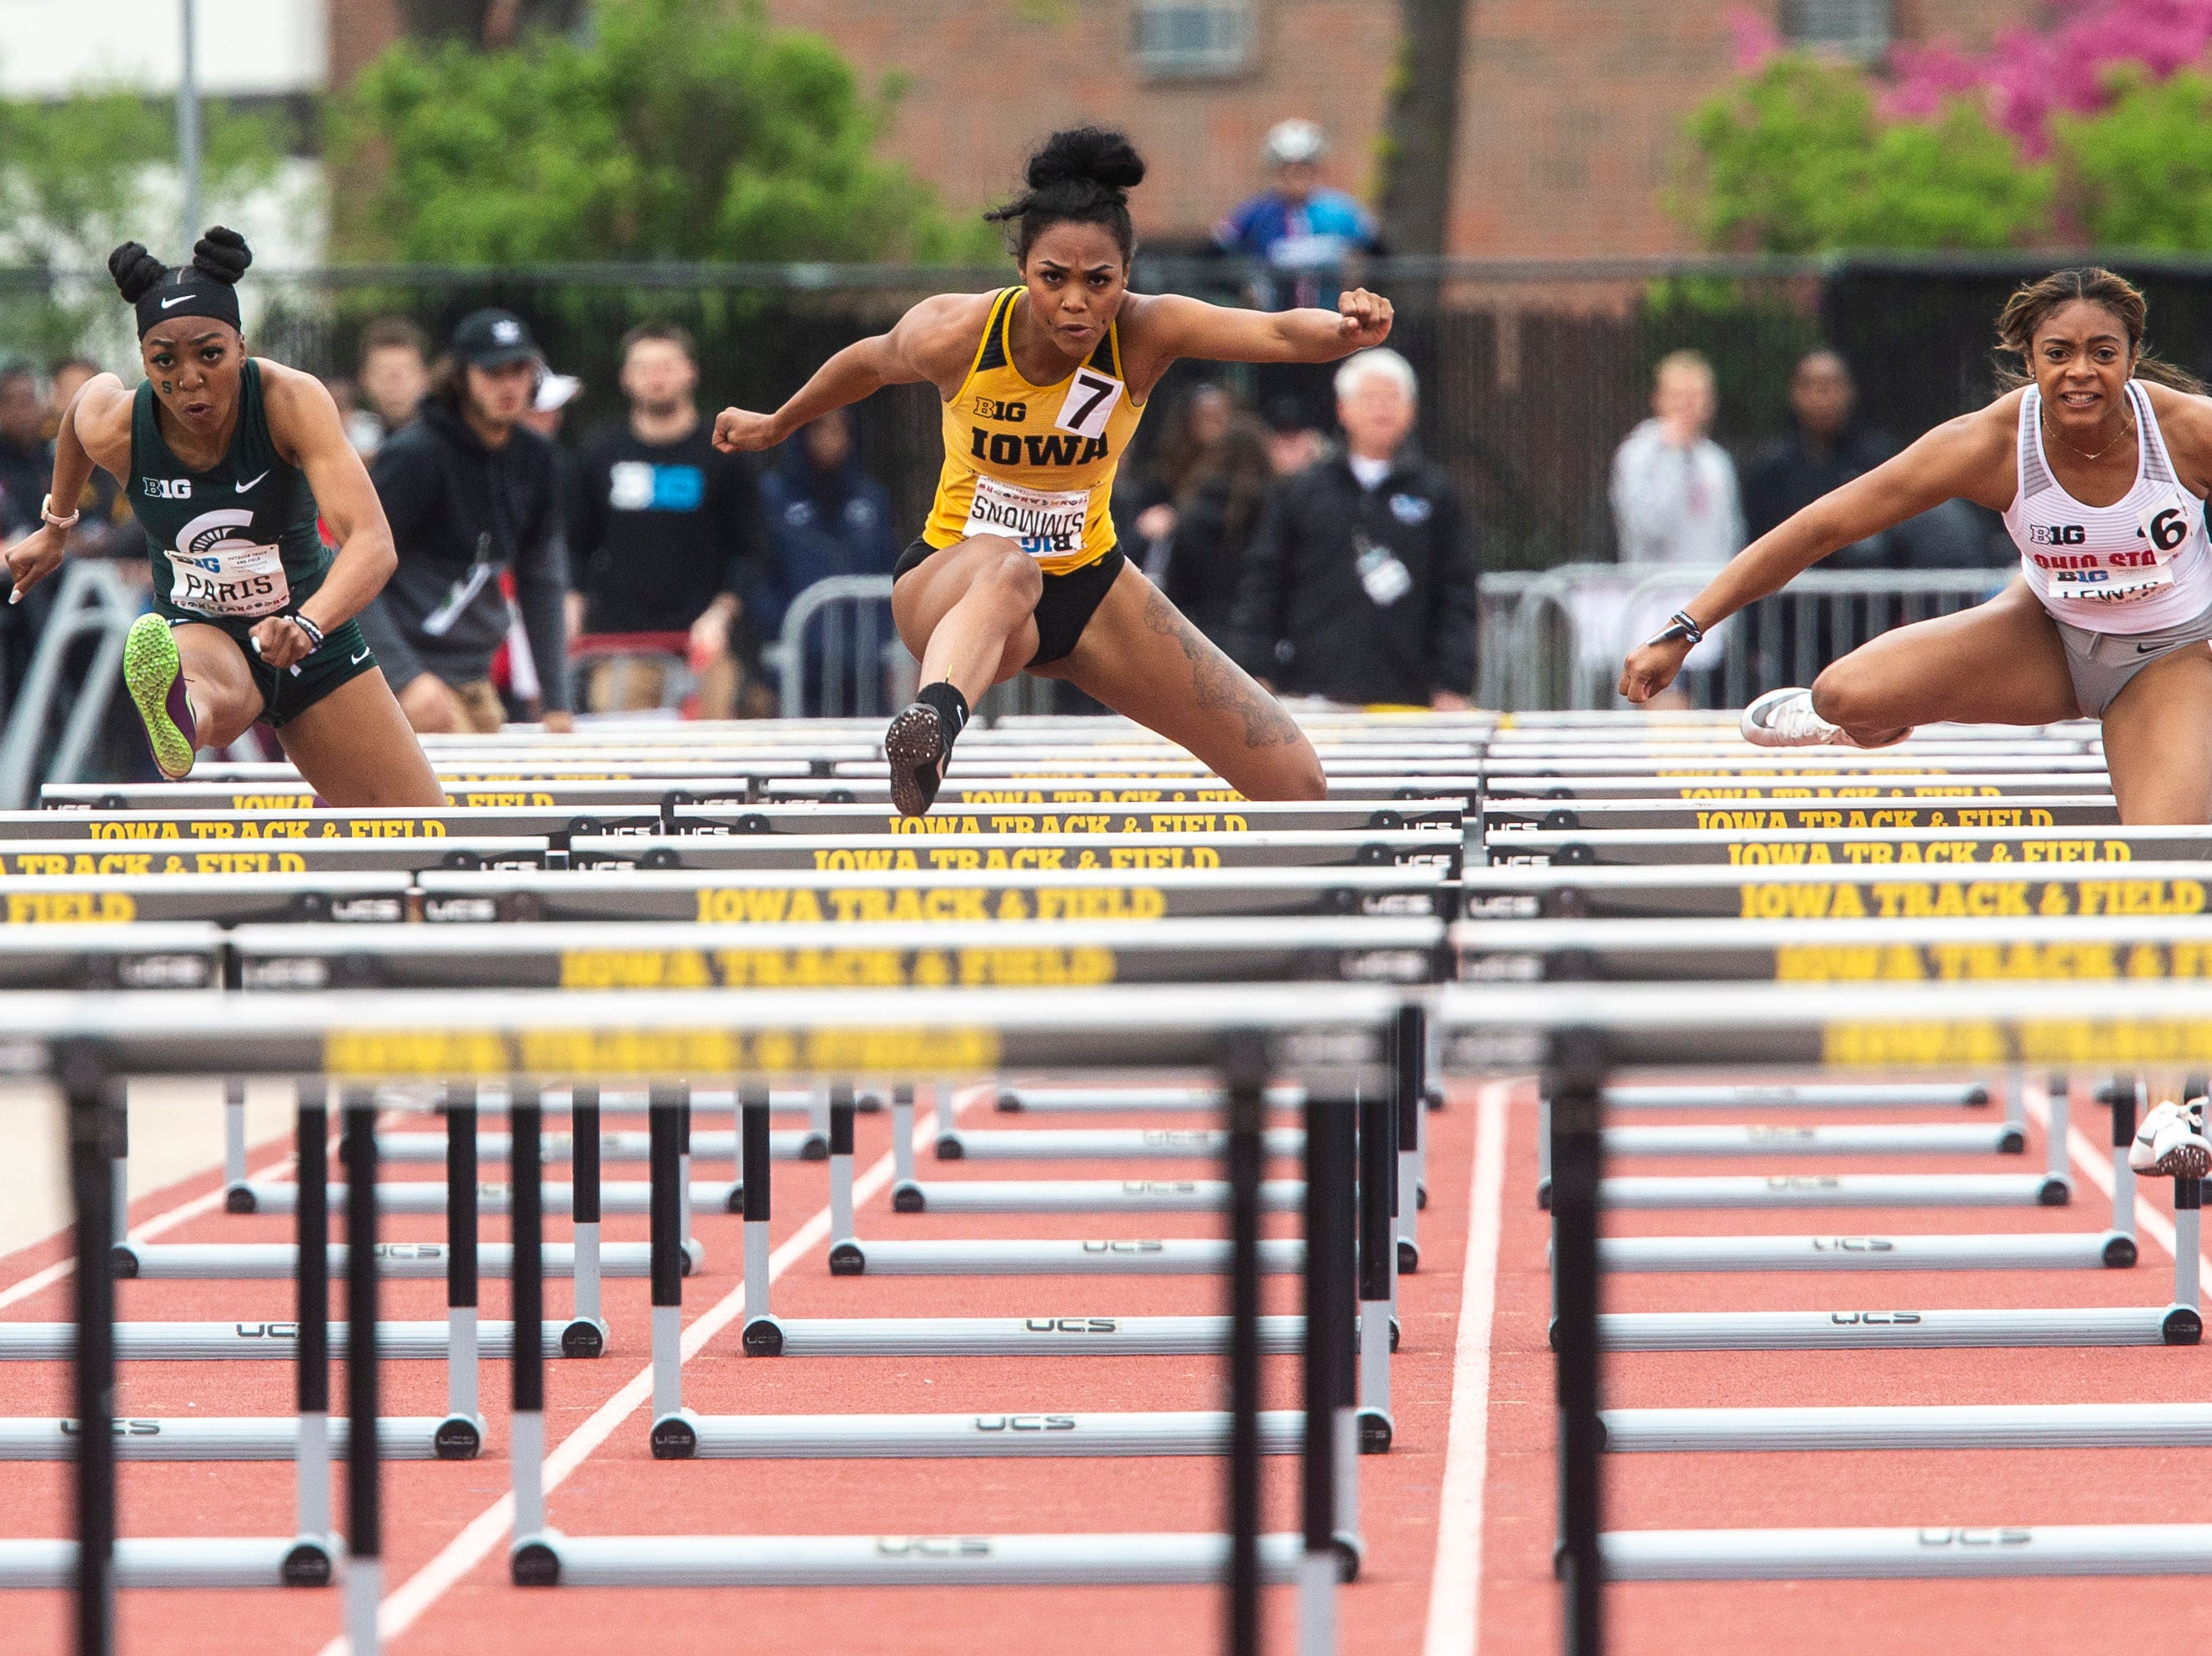 Iowa senior Tia Simmons clears a hurdle while competing in 100 meter hurdles during the final day of Big Ten track and field outdoor championships, Sunday, May 12, 2019, at Francis X. Cretzmeyer Track on the University of Iowa campus in Iowa City, Iowa. Simmons finished sixth, with a time of 13.72.